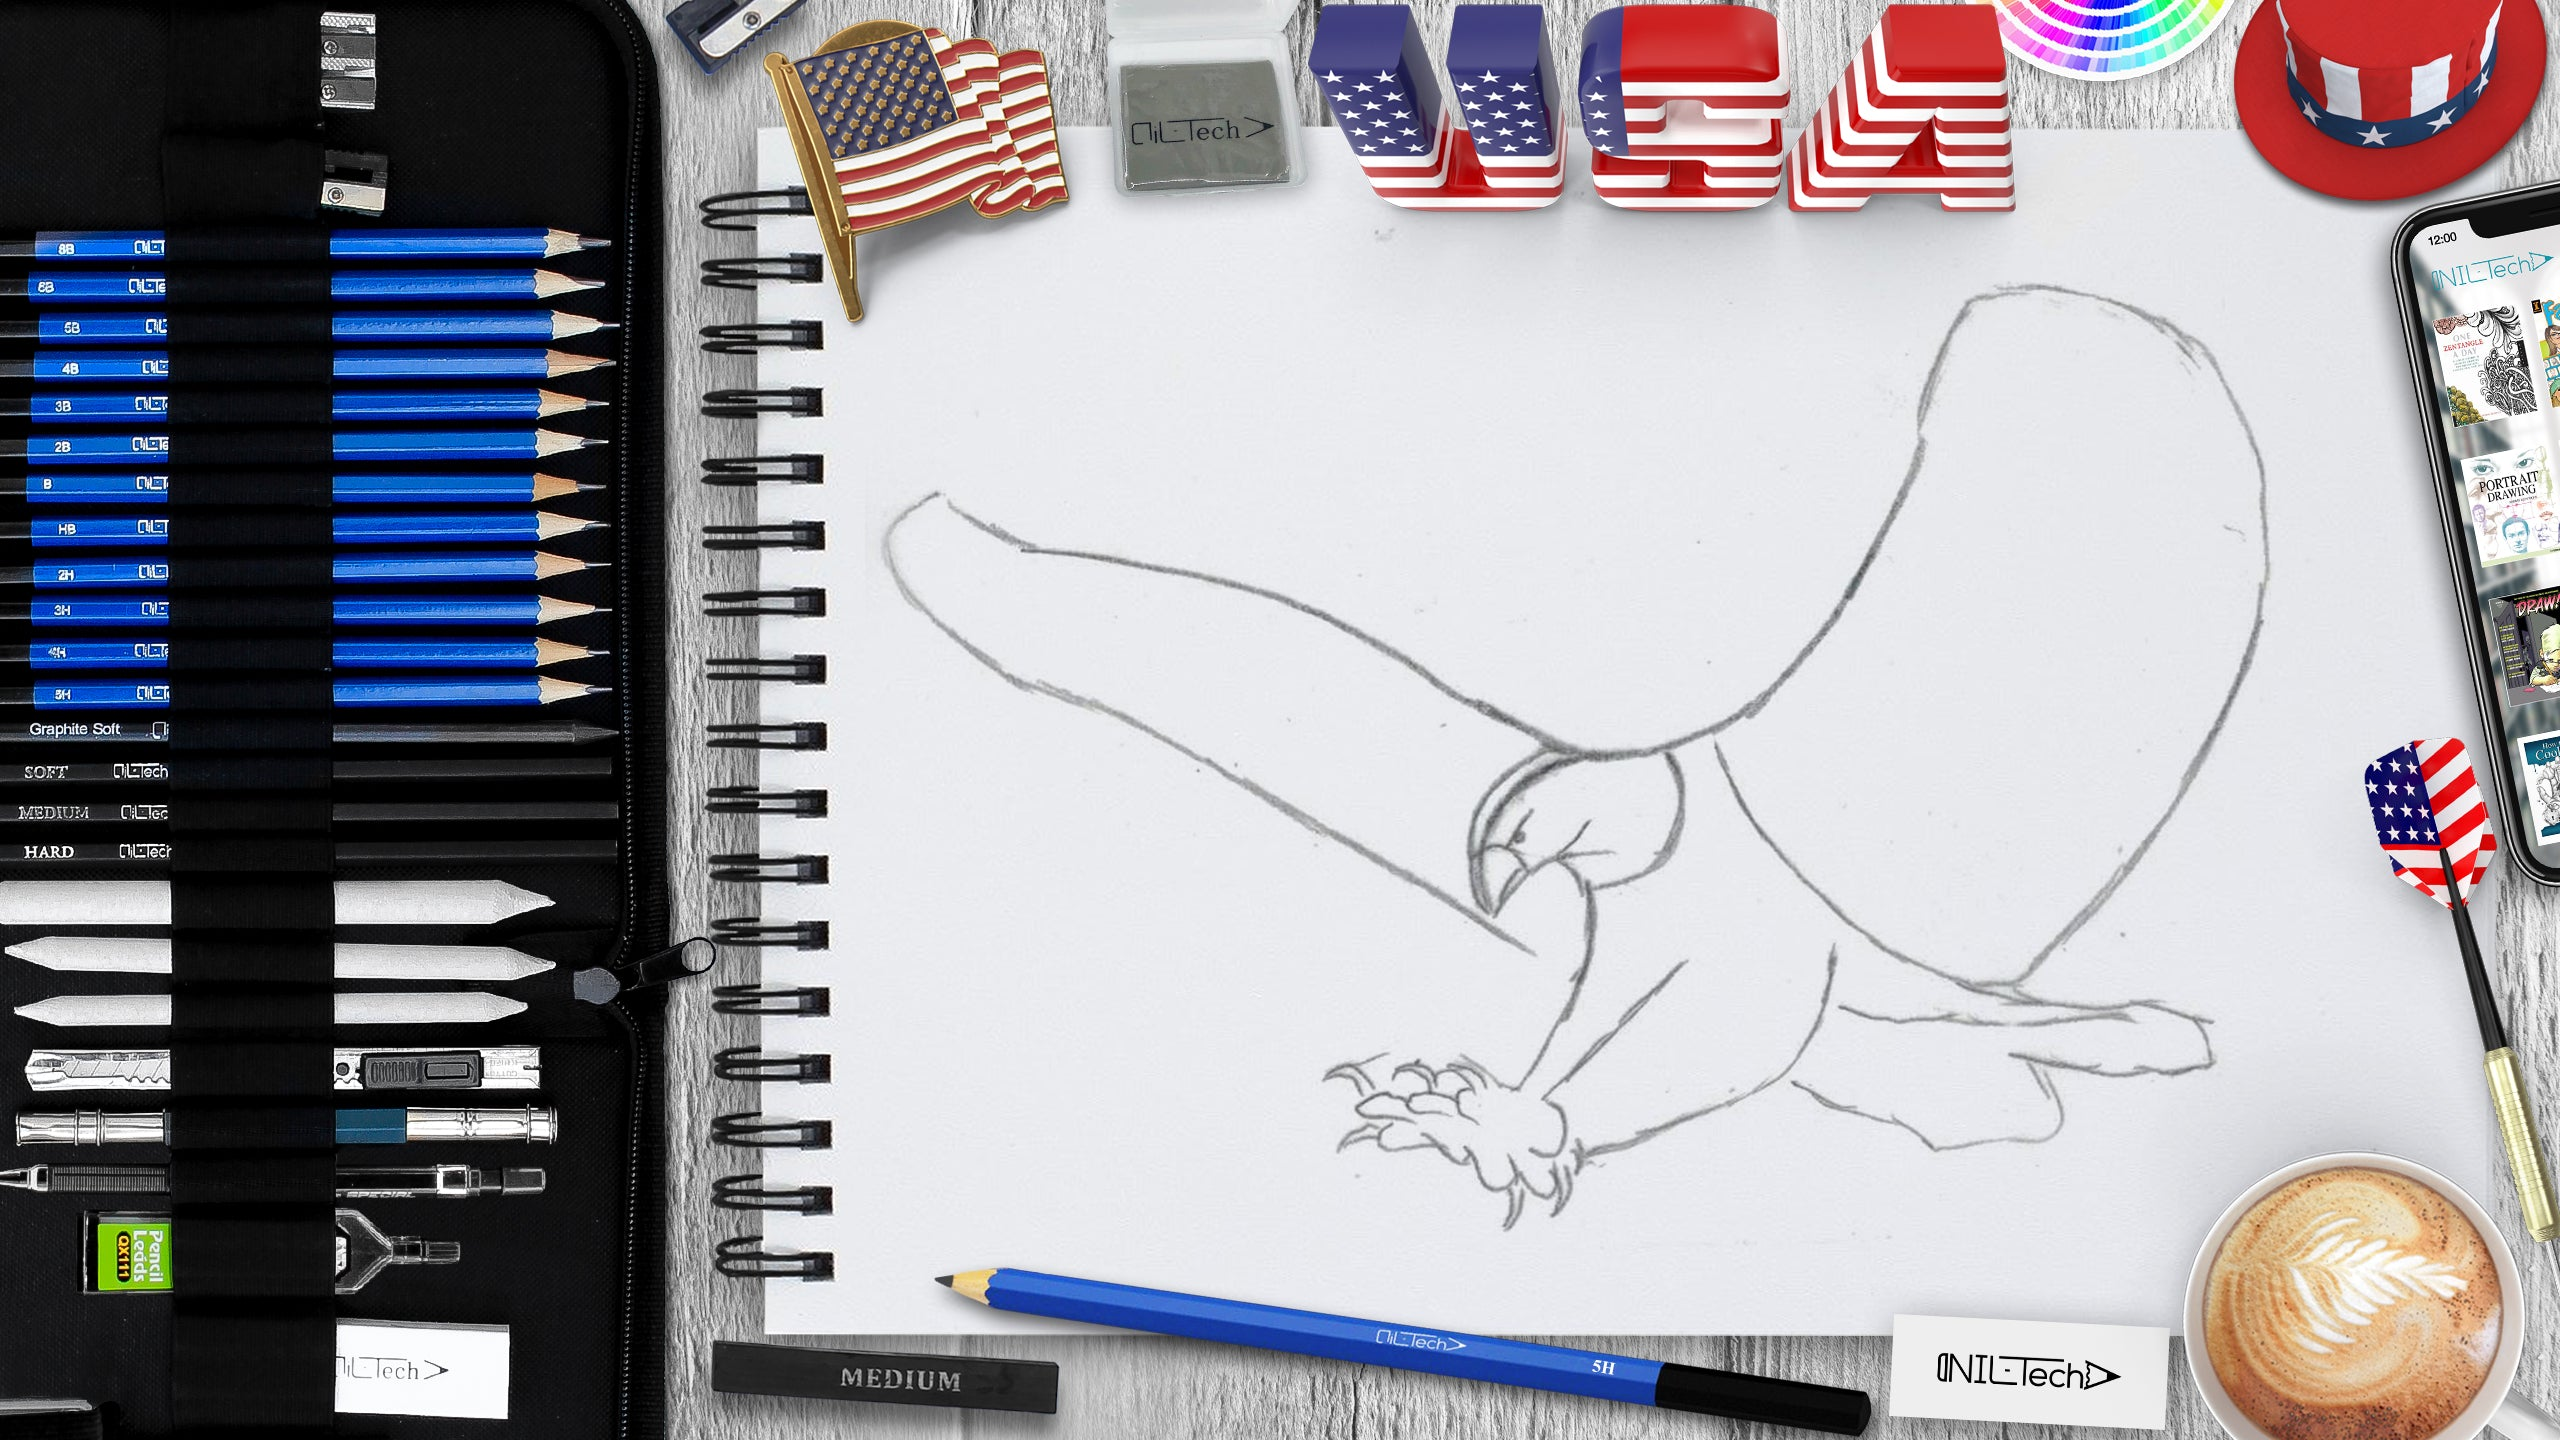 eagle seep by step drawing tutorial